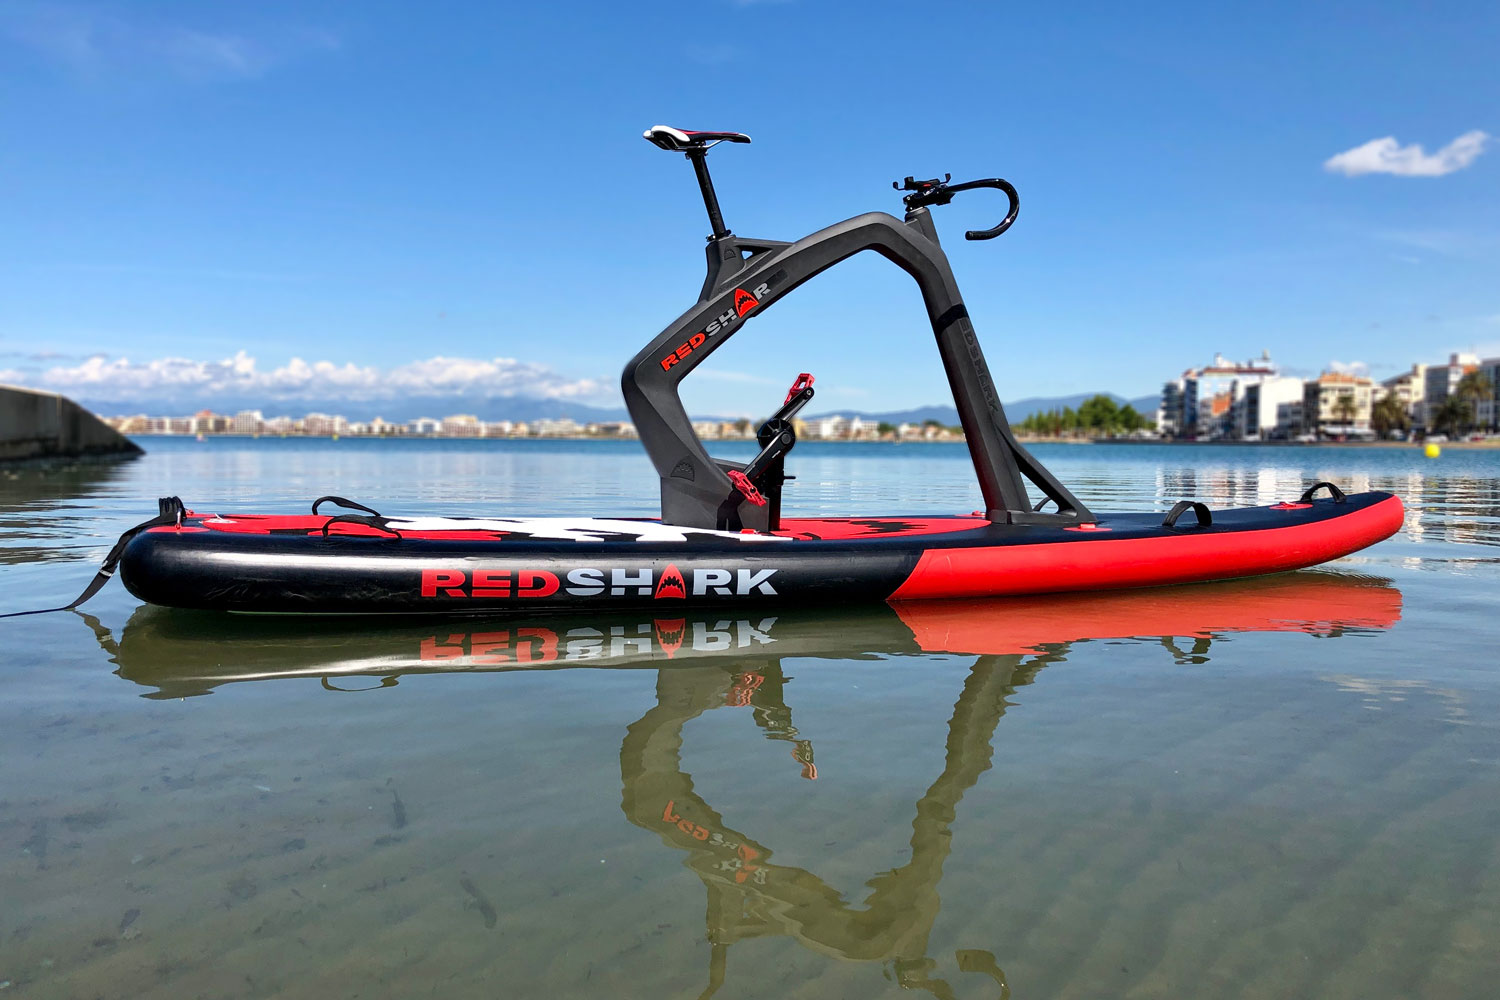 RedShark is back in the water, on new packable pedal-powered